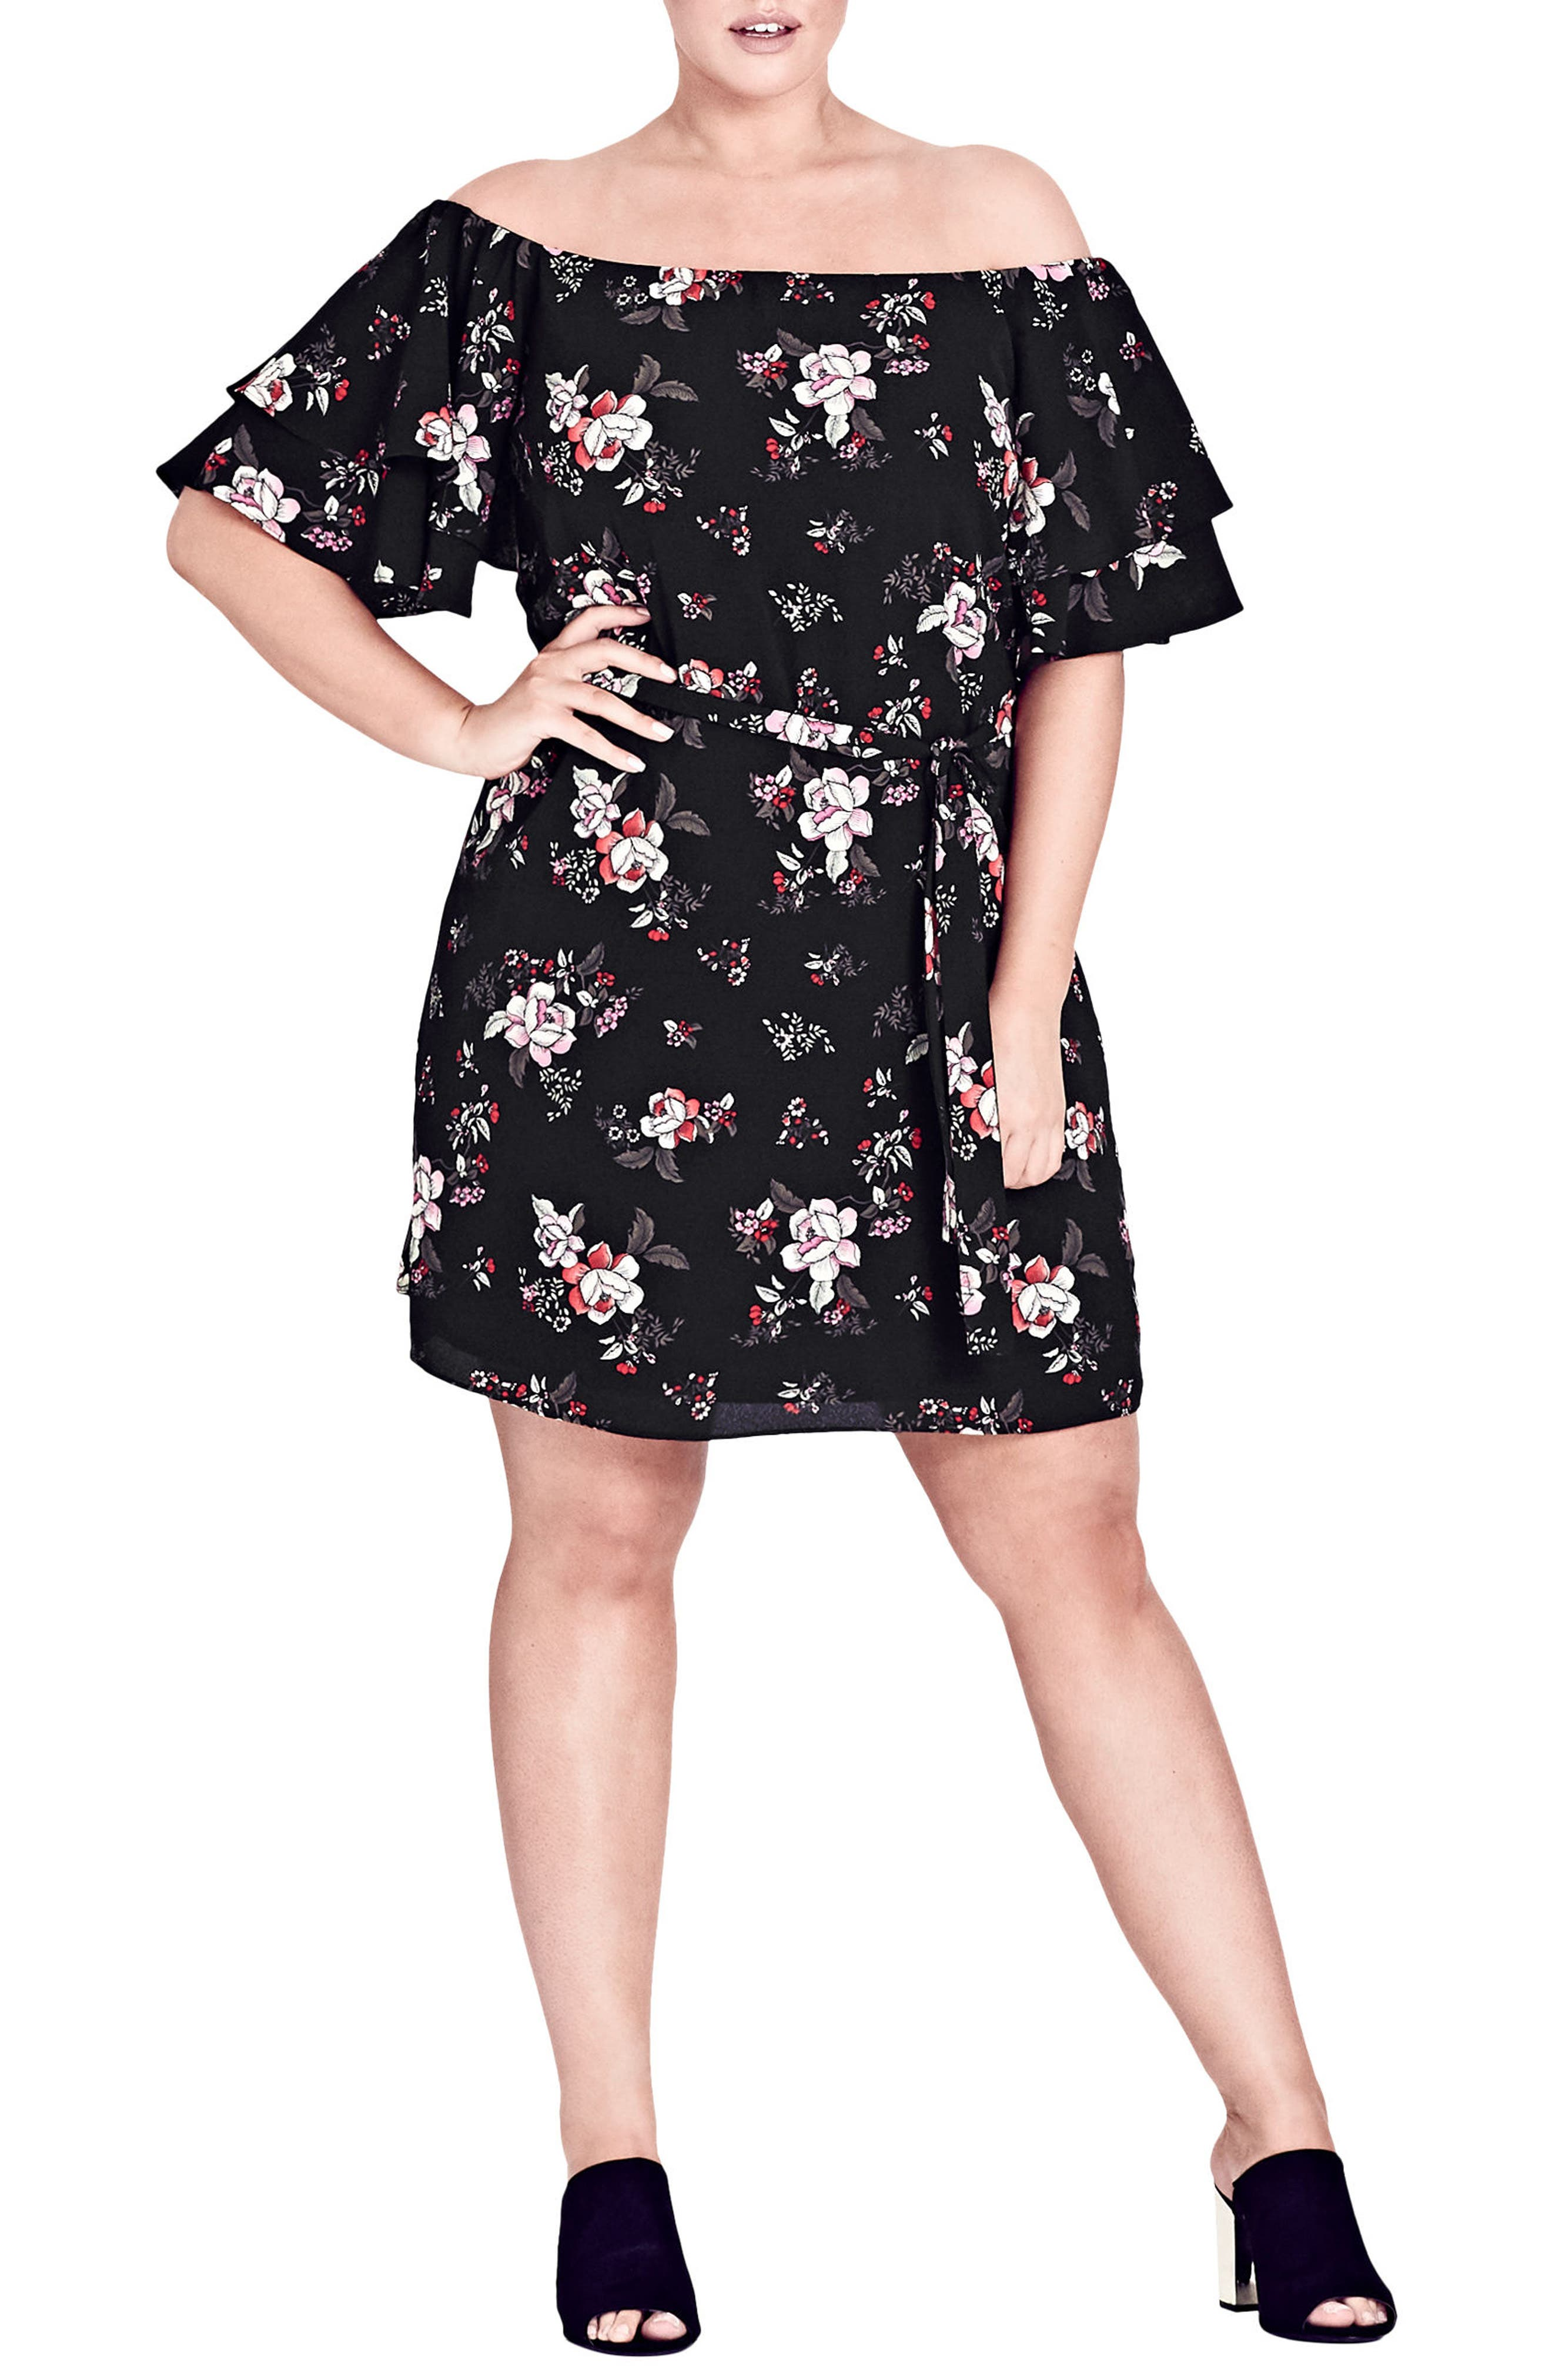 Floral Dreaming Off the Shoulder Dress,                             Main thumbnail 1, color,                             Floral Dreaming